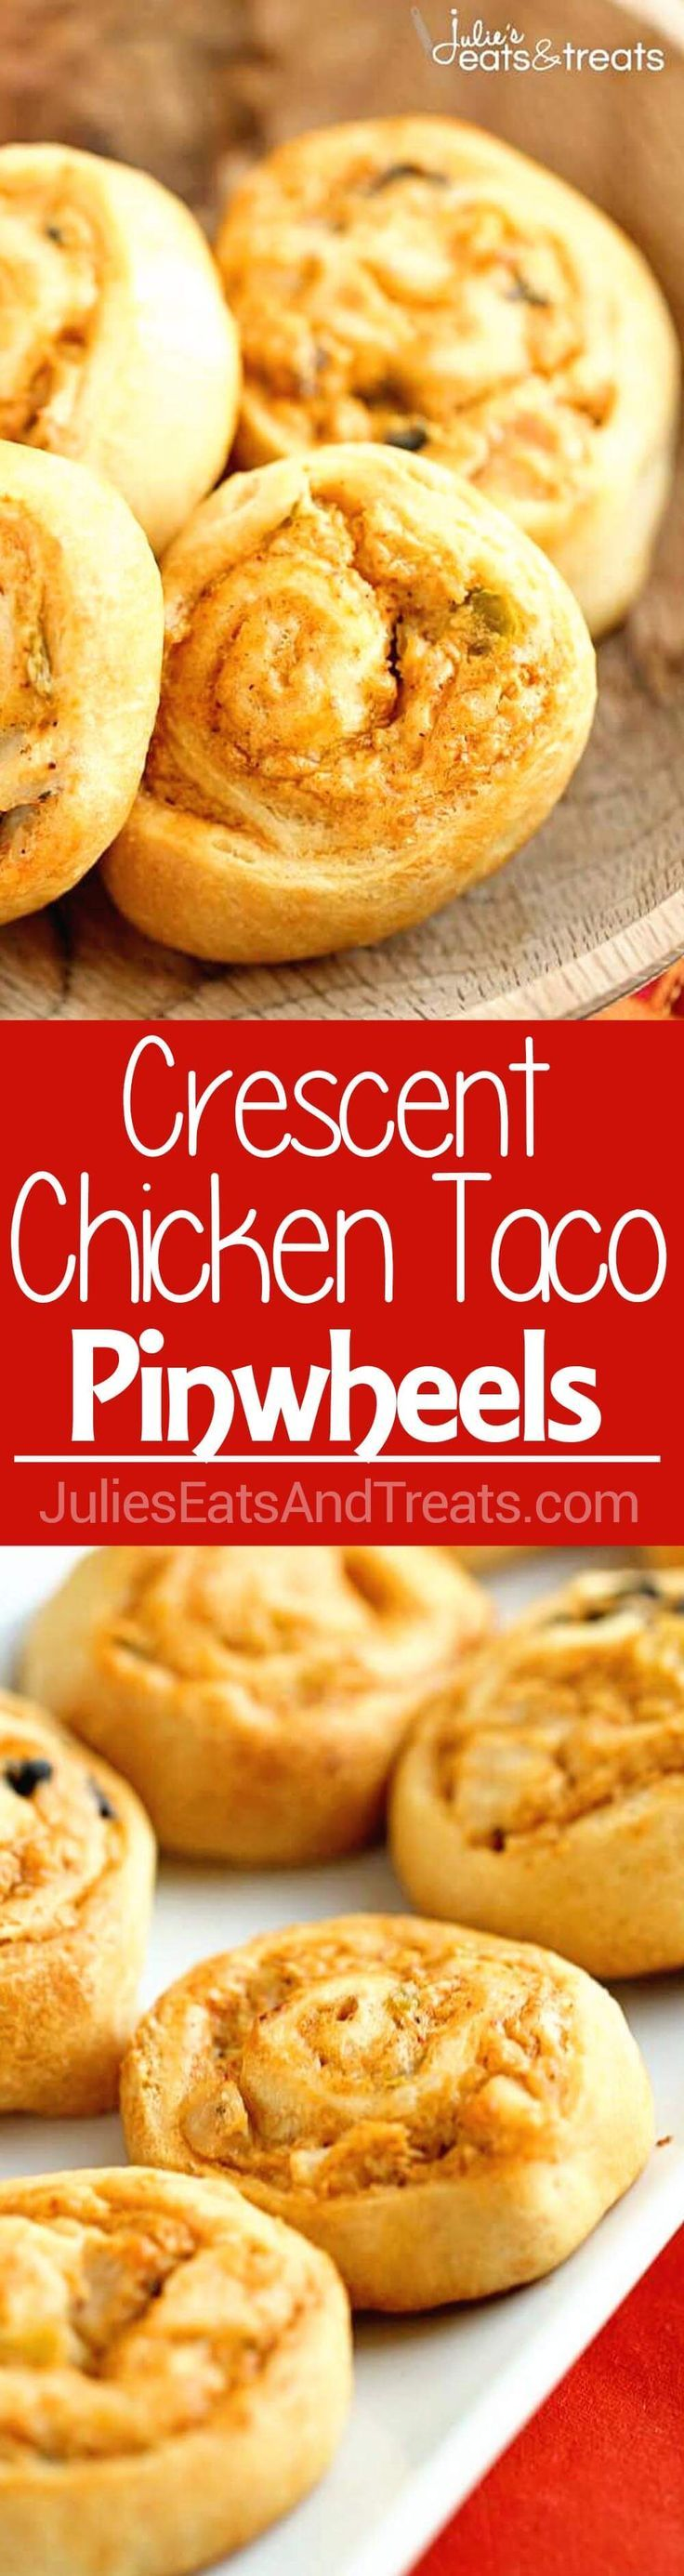 Crescent Chicken Taco Pinwheels - An easy appetizer recipe filled with diced chicken, cream cheese, taco seasoning, and green chiles! via /julieseats/